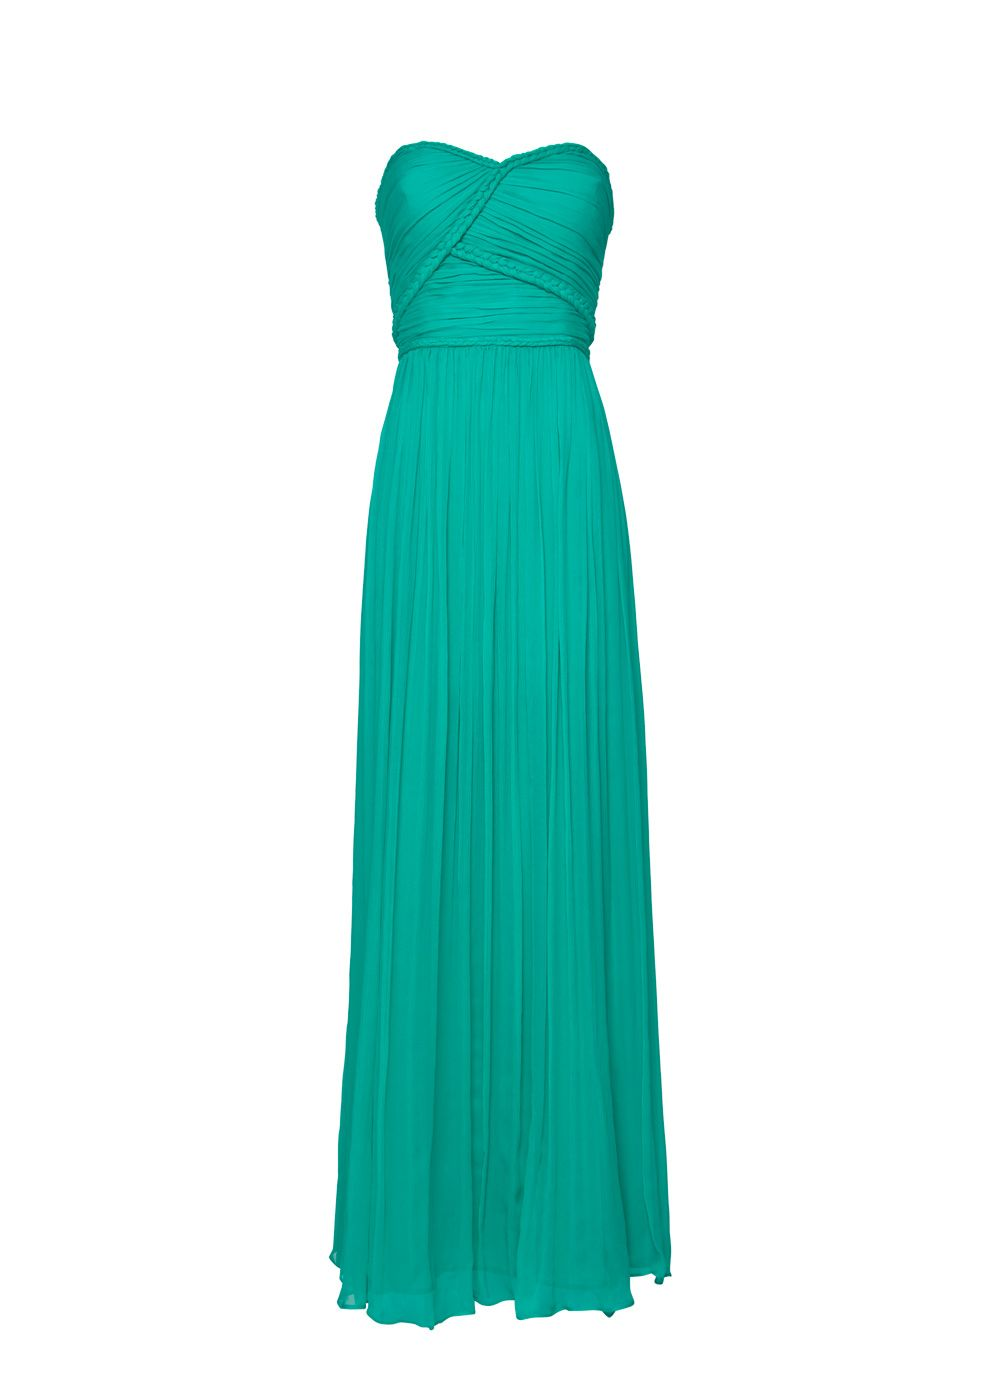 Strapless gown - Women | Strapless gown, Gowns and Winter